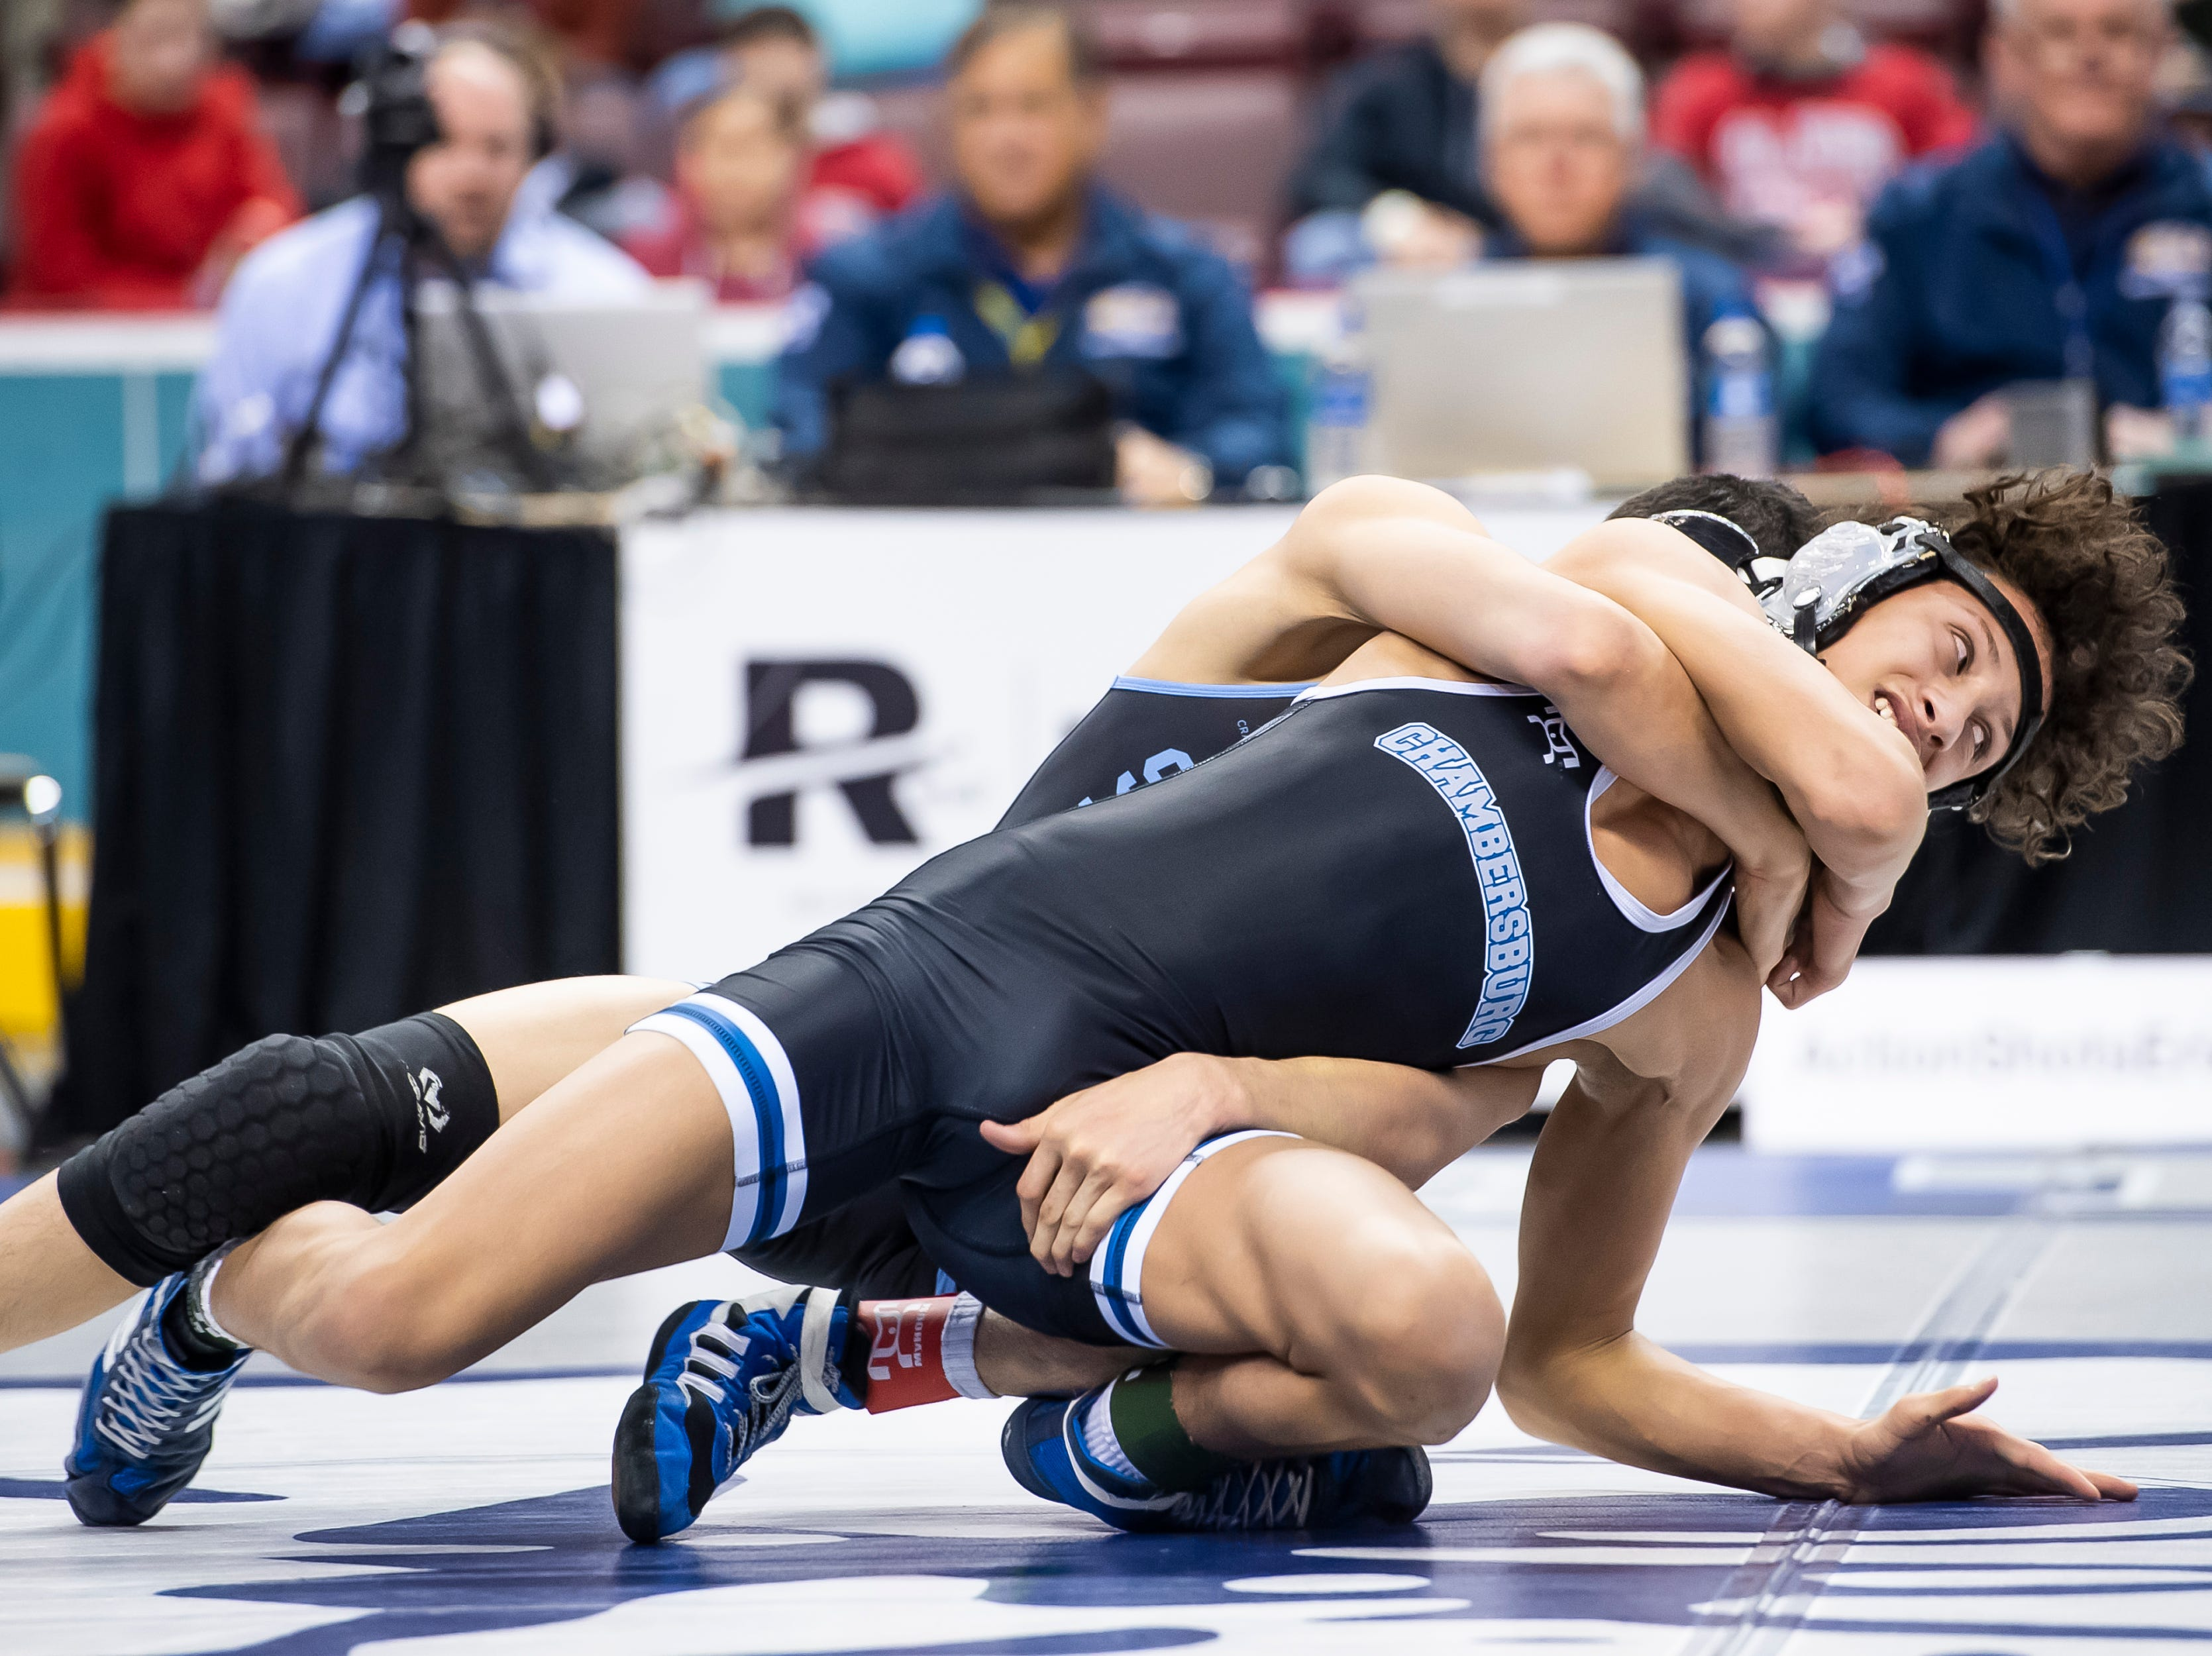 Chambersburg's Karl Schindledecker, front, wrestles Seneca Valley's Alejandro Herrera during a 3A 113-pound fourth round consolation bout at the Giant Center in Hershey Saturday, March 9, 2019. Herrera won by a 6-0 decision.